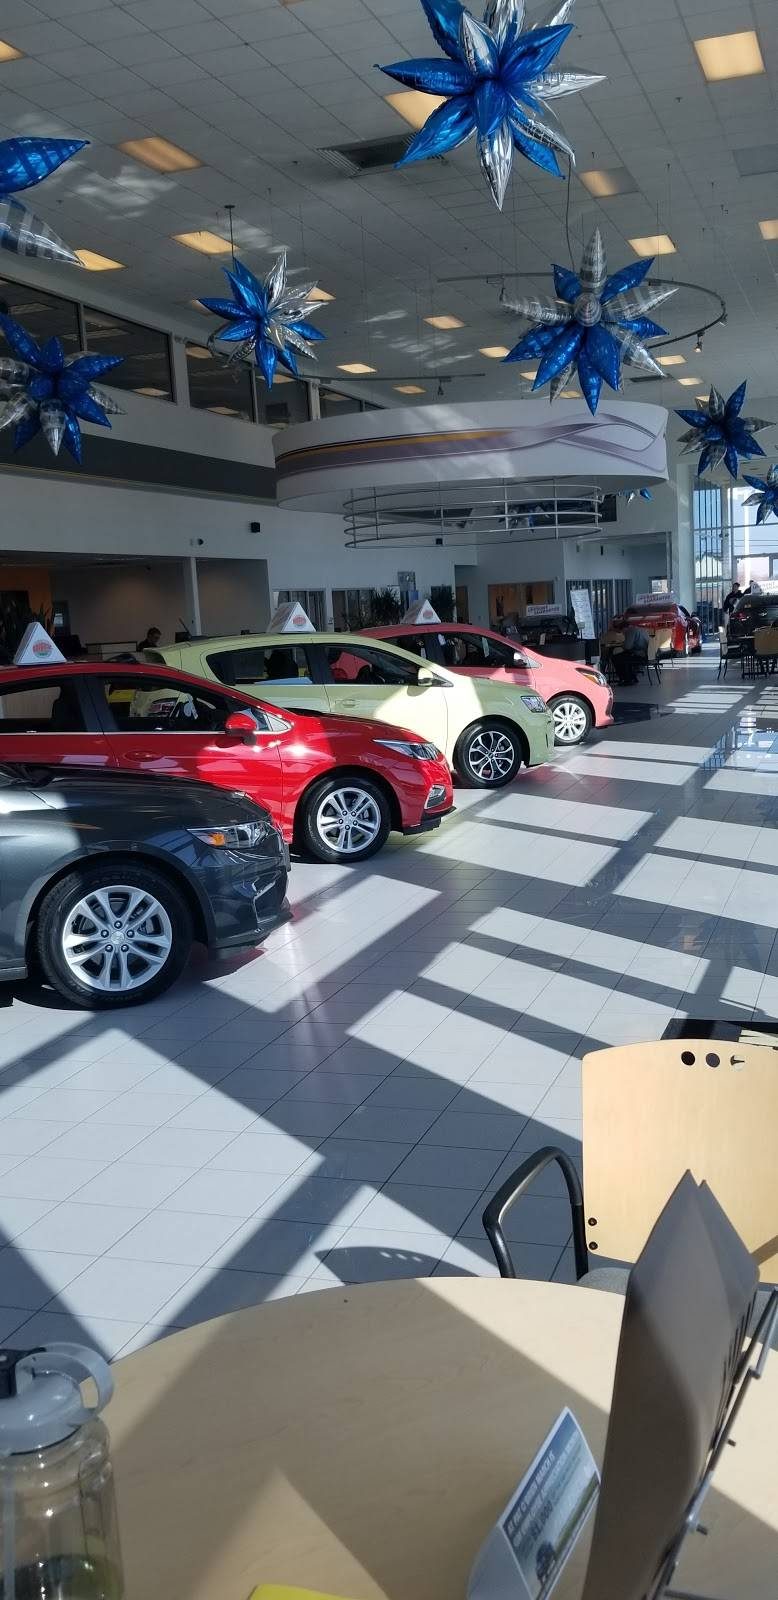 Serpentini Chevrolet Of Willoughby Hills 2810 Bishop Rd Willoughby Hills Oh 44092 Usa